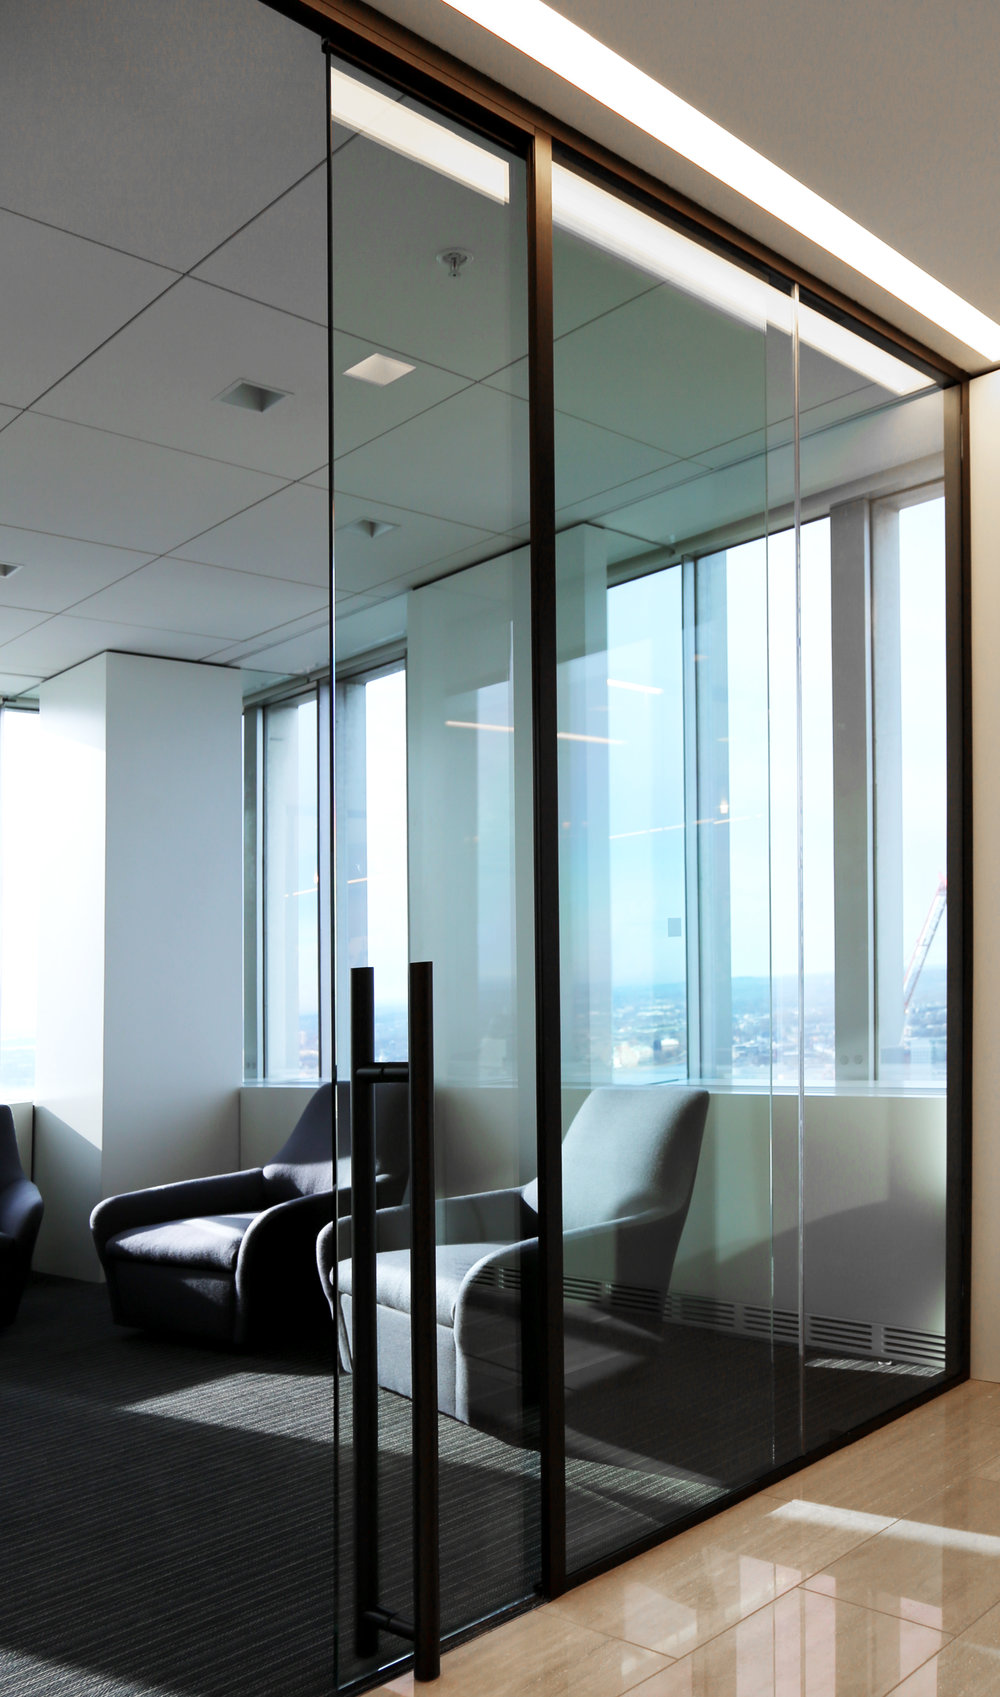 Modernus Frameless Glass Sliding Door System - Spaceworks AI.jpg